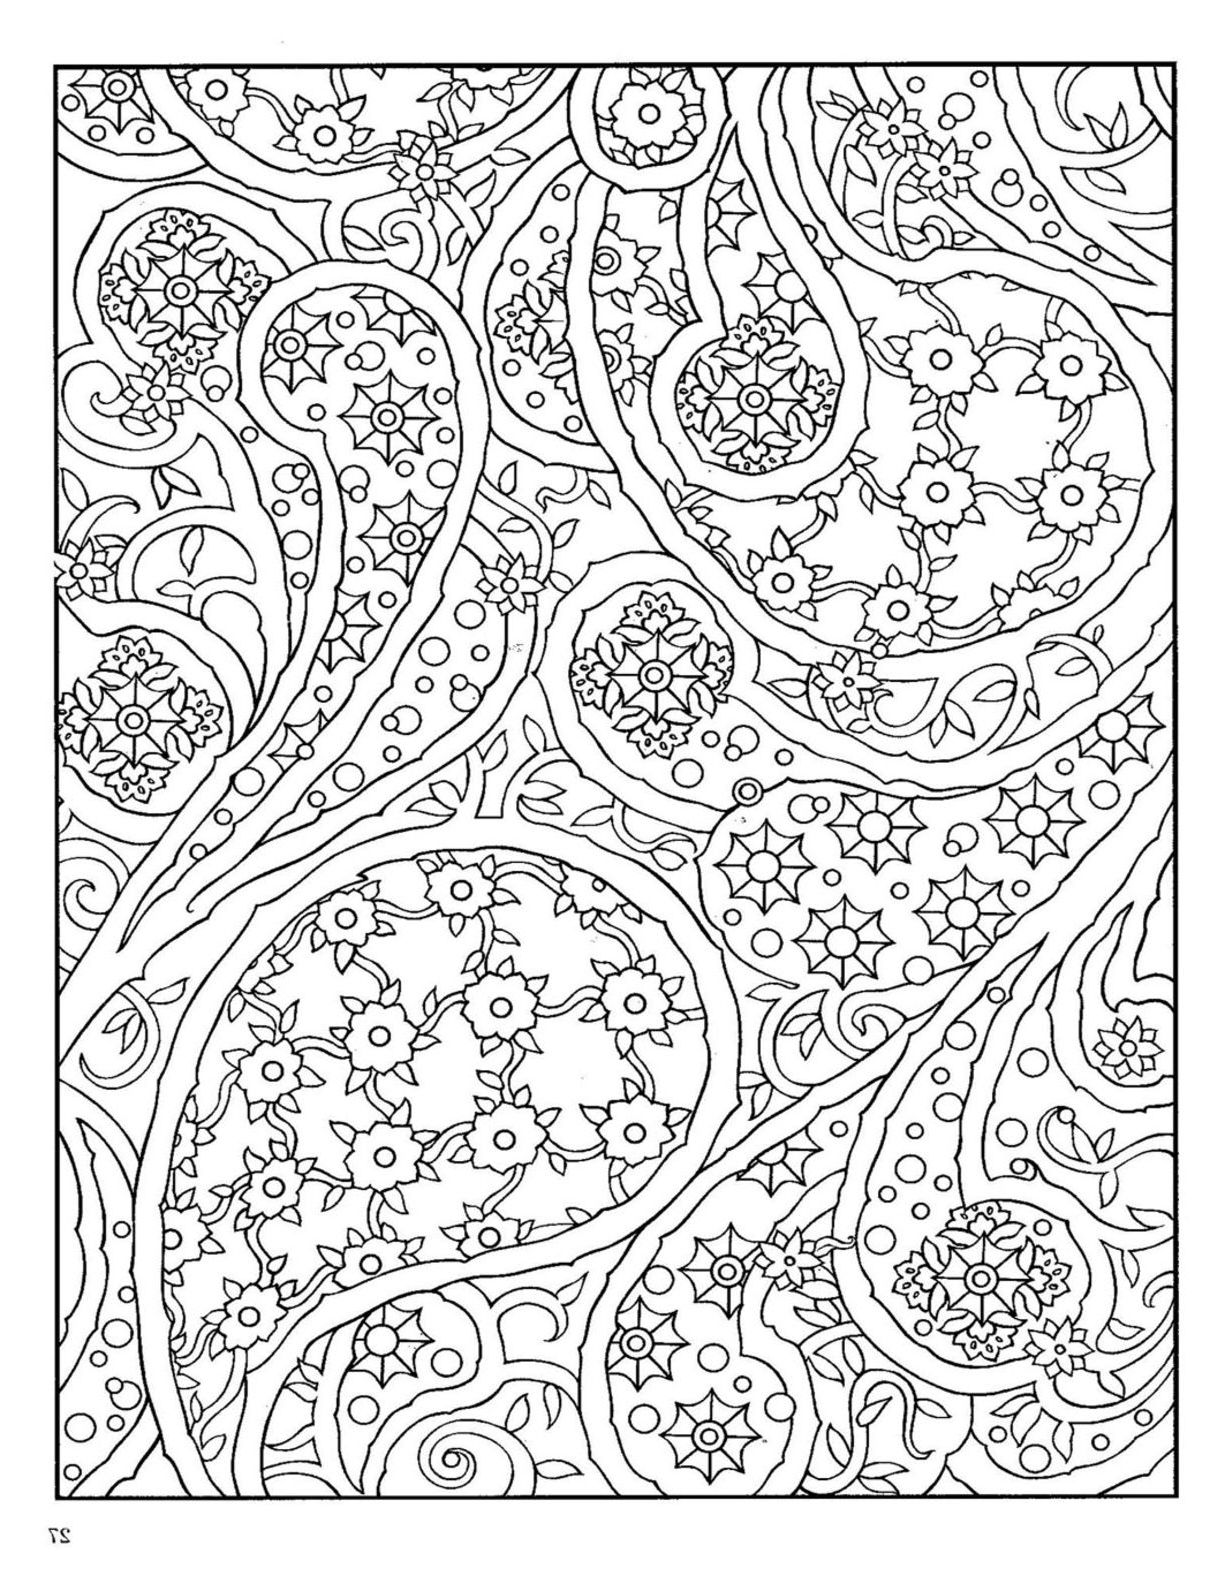 Paisley Coloring Book Paisley Coloring Pages Designs Coloring Books Mandala Coloring Pages